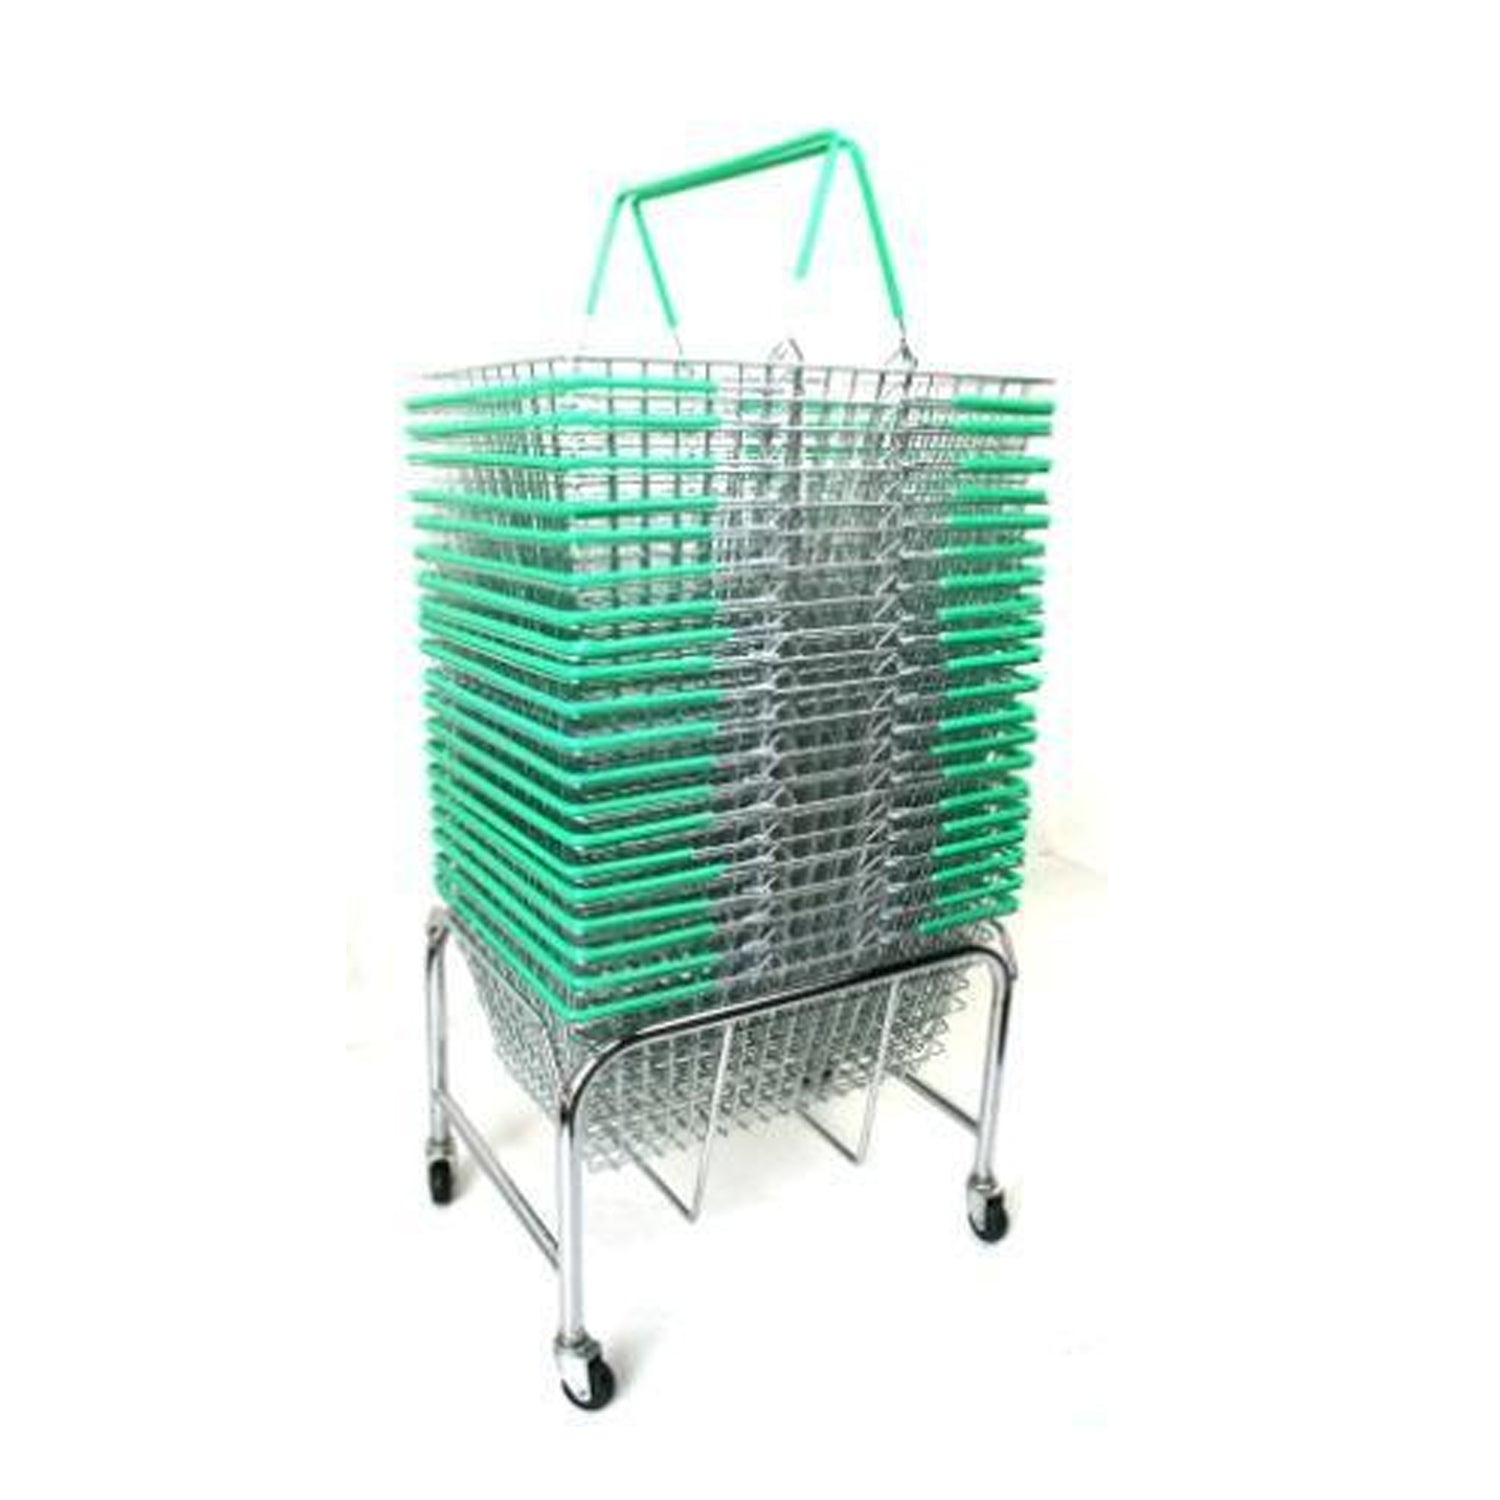 WIRE_SHOPPING_Green_Wire_Shopping_Baskets_Stacked_2_Web_friendly_1500x1500.jpg?v=1524219915